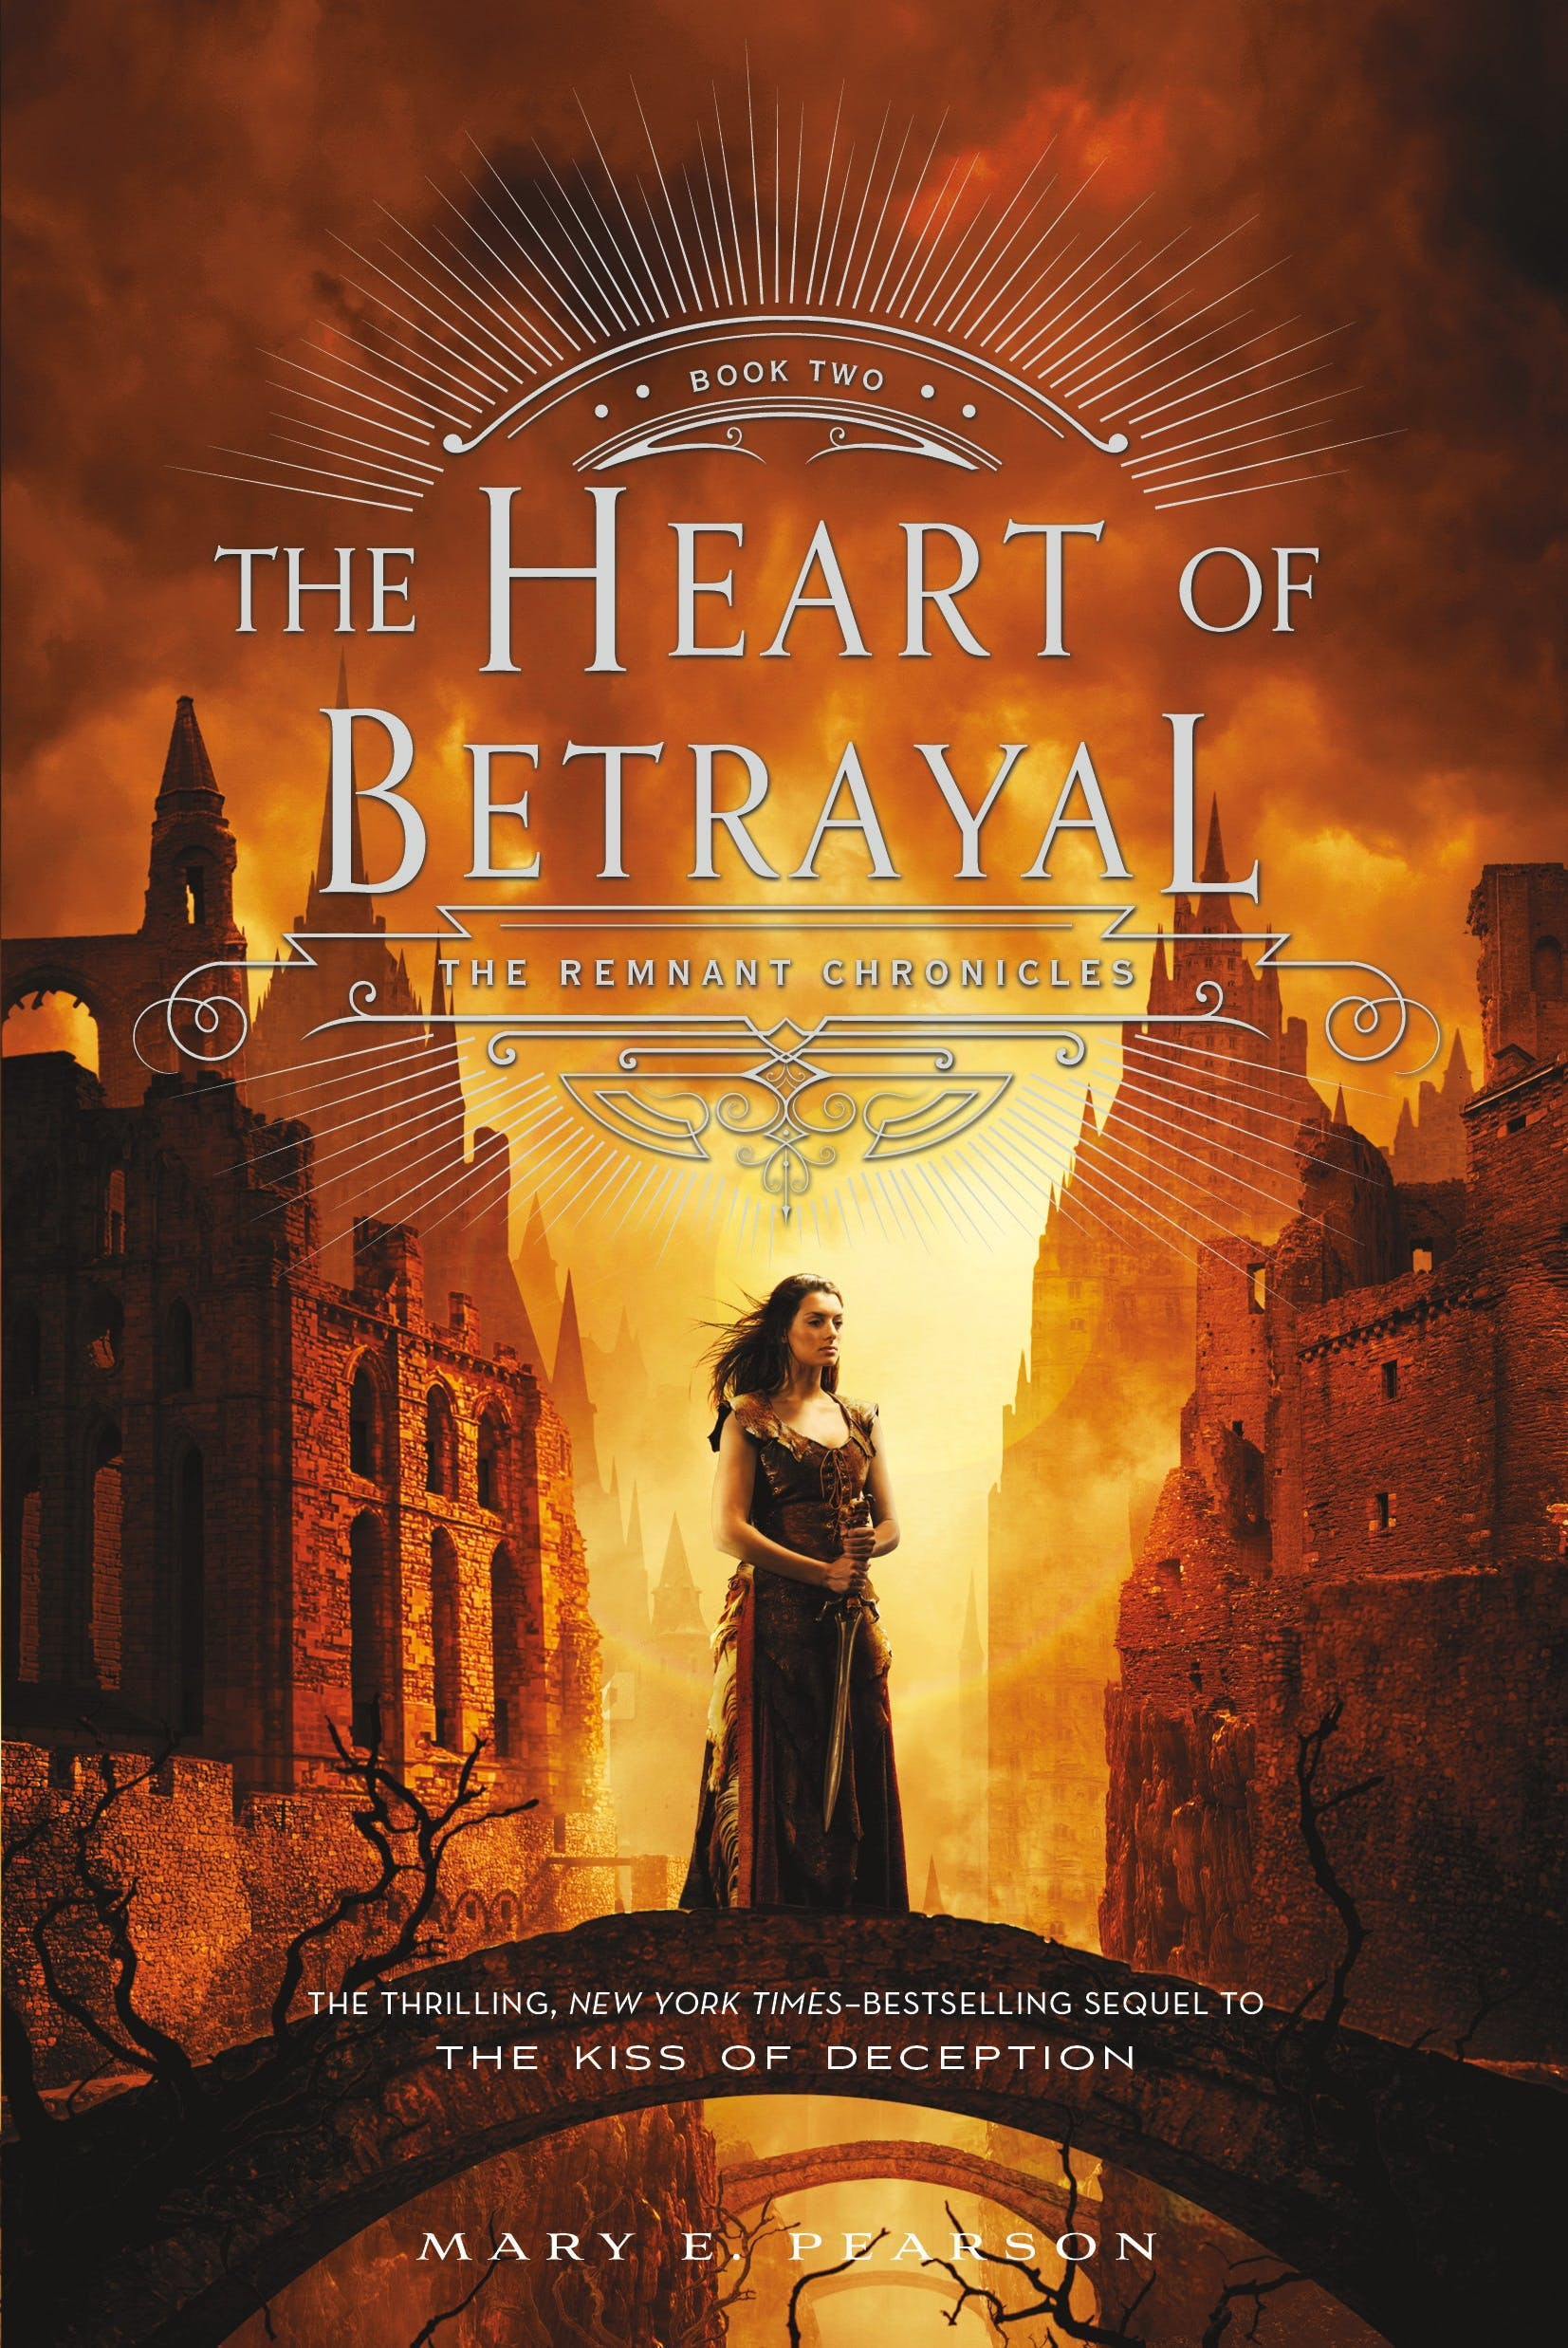 Image of The Heart of Betrayal